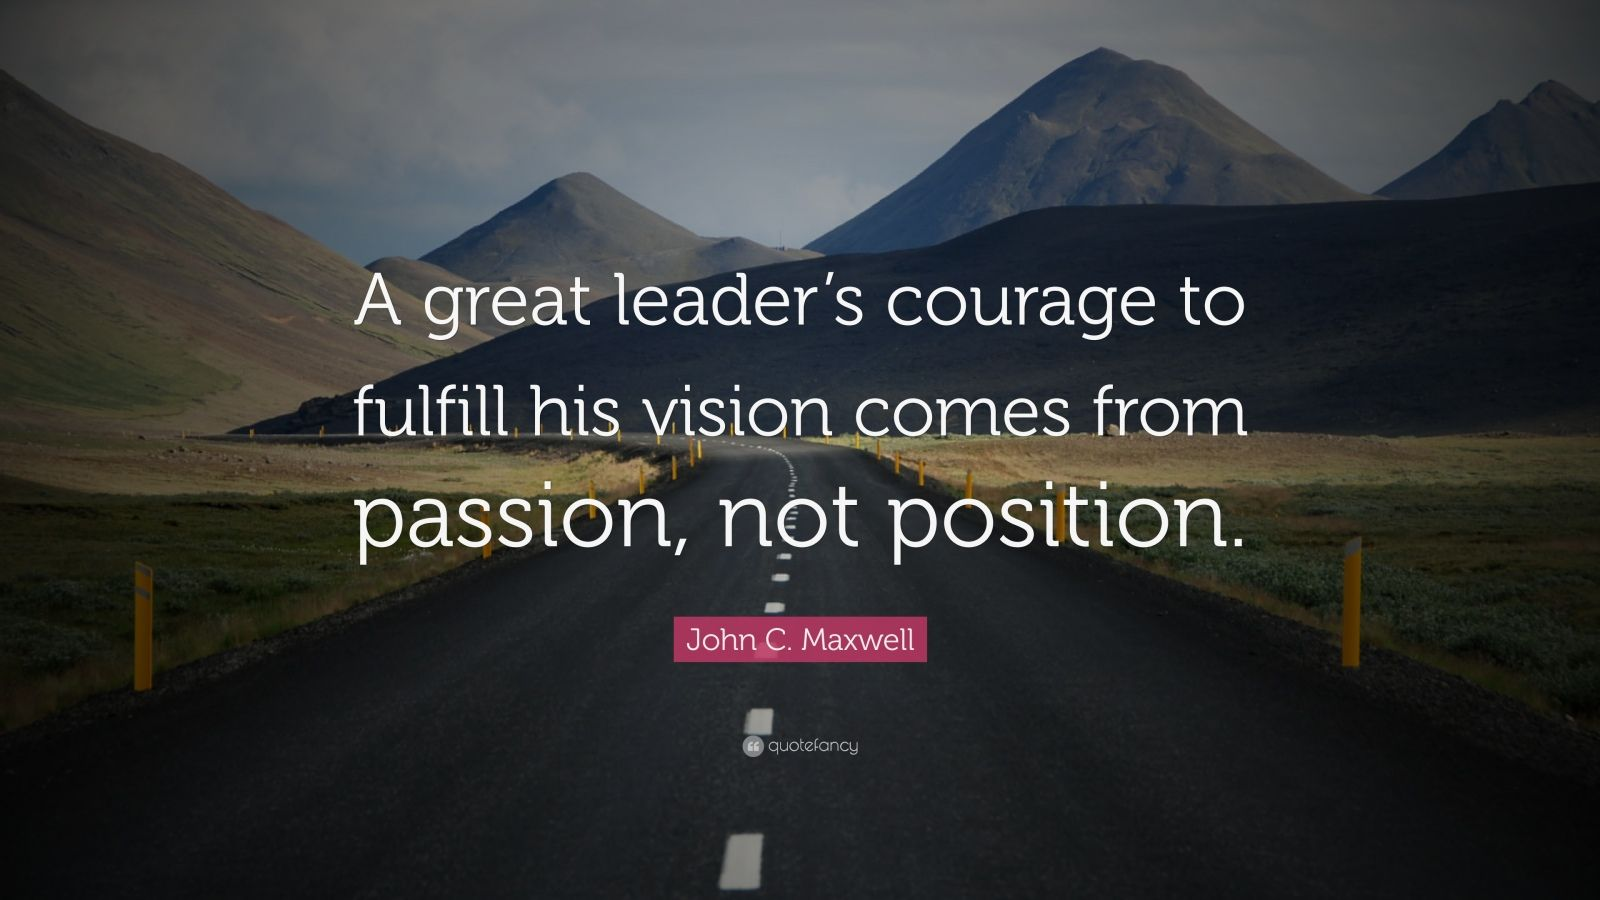 courage and vision in leadership John maxwell a great leader's courage to fulfill his vision comes from passion, not position.